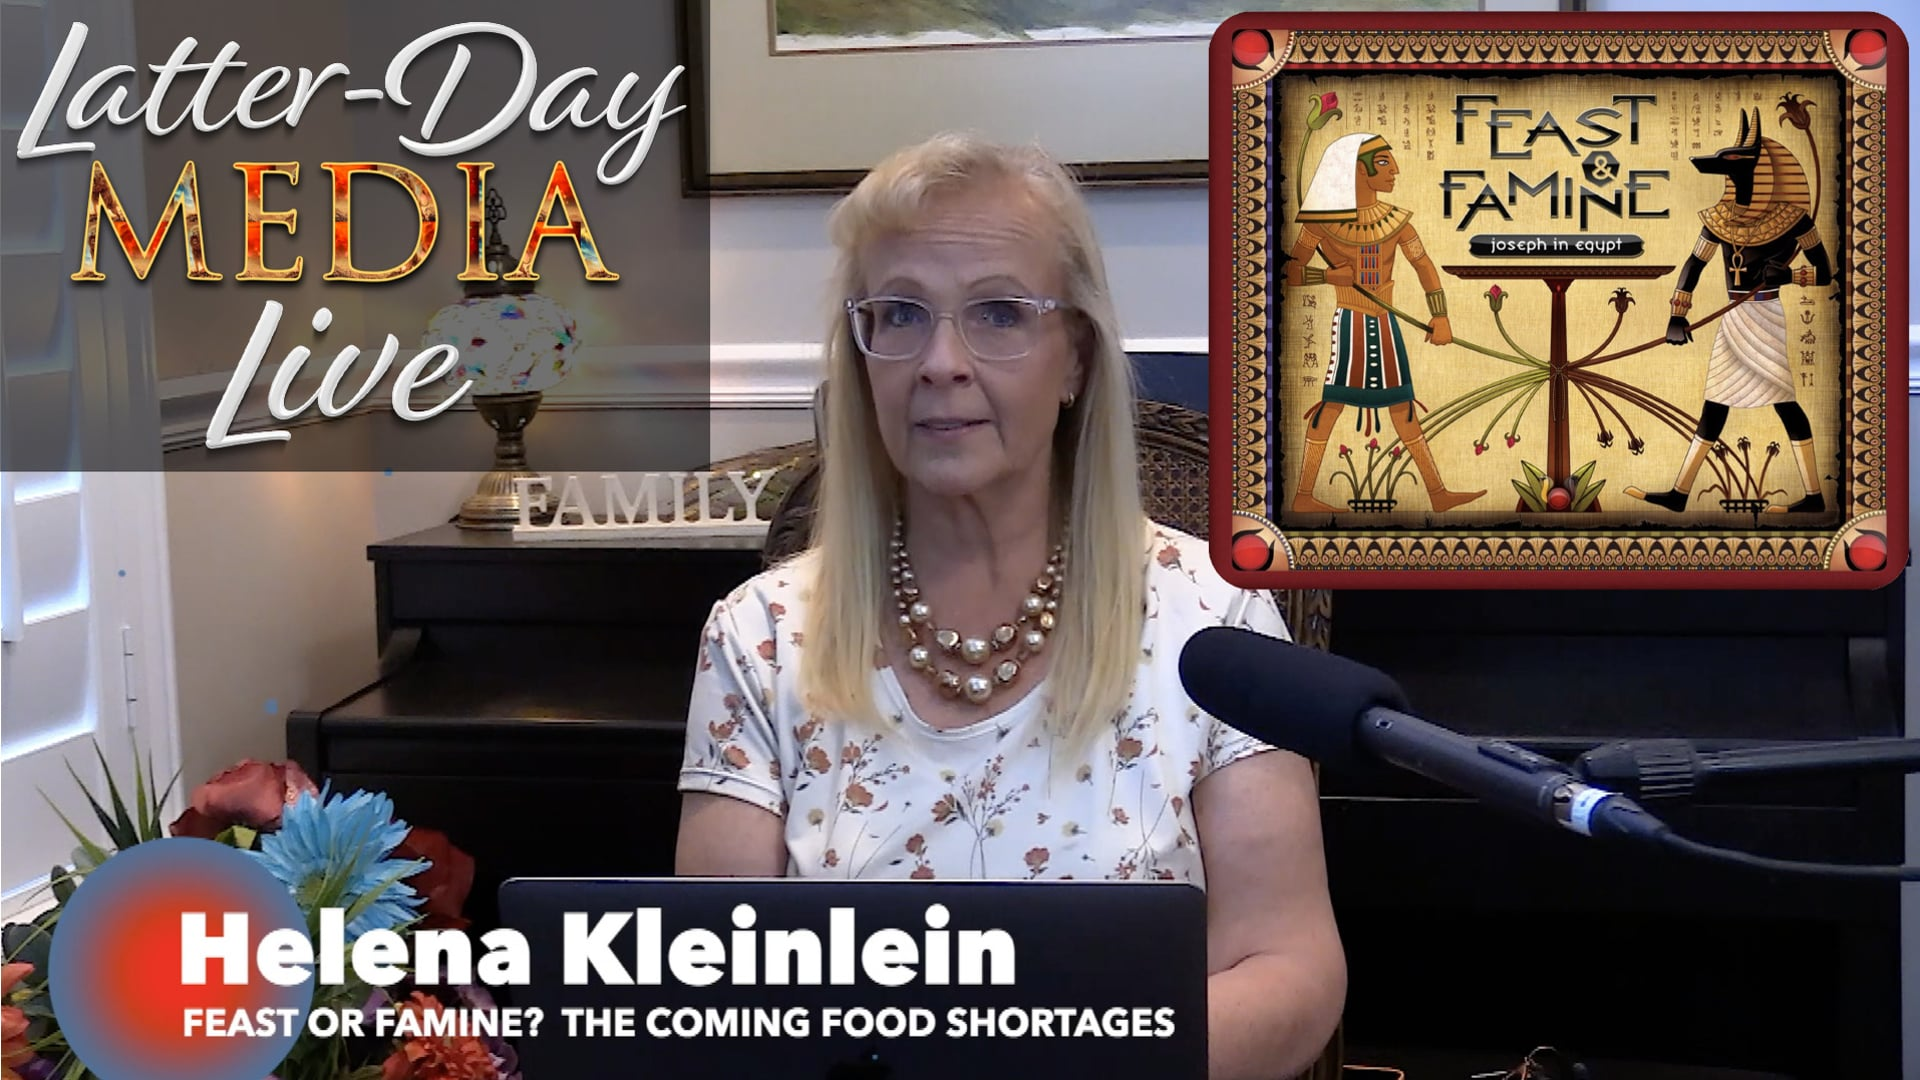 Latter-Day Media Live - Helena Kleinlein - Feast or Famine? The Coming Food Shortages (Lakeview 4th Ward)